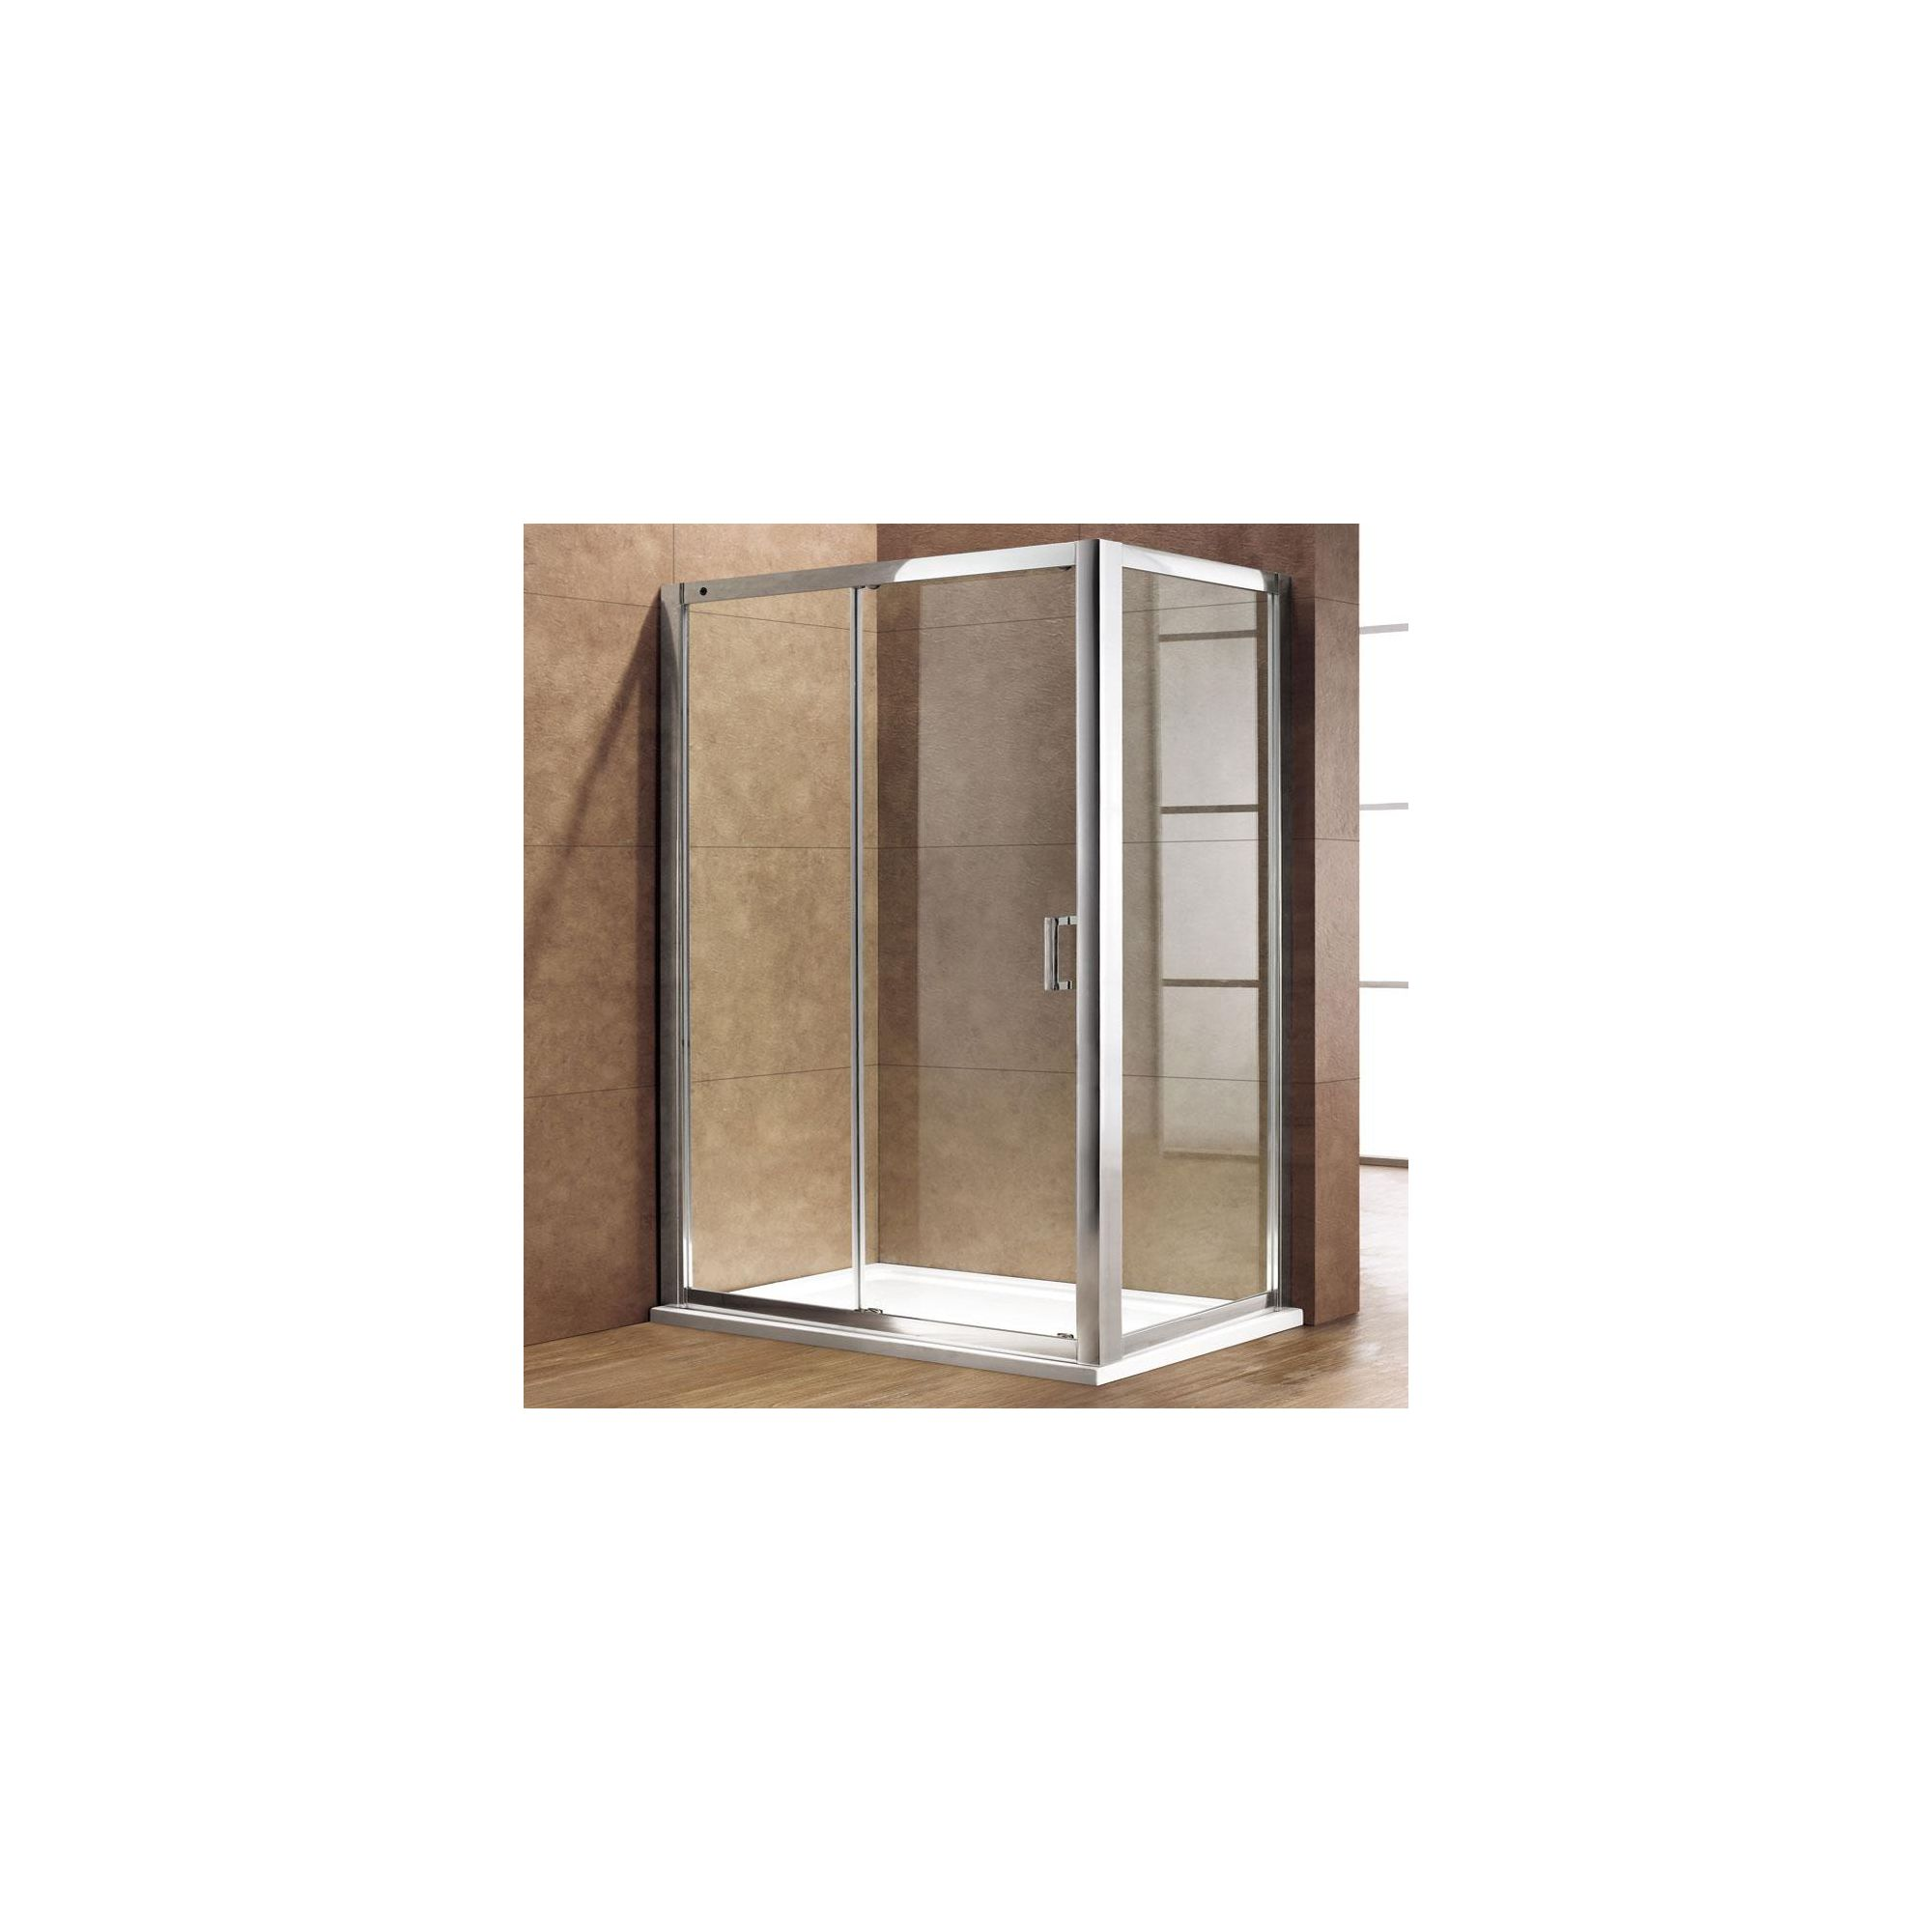 Duchy Premium Single Sliding Door Shower Enclosure, 1600mm x 700mm, 8mm Glass, Low Profile Tray at Tesco Direct